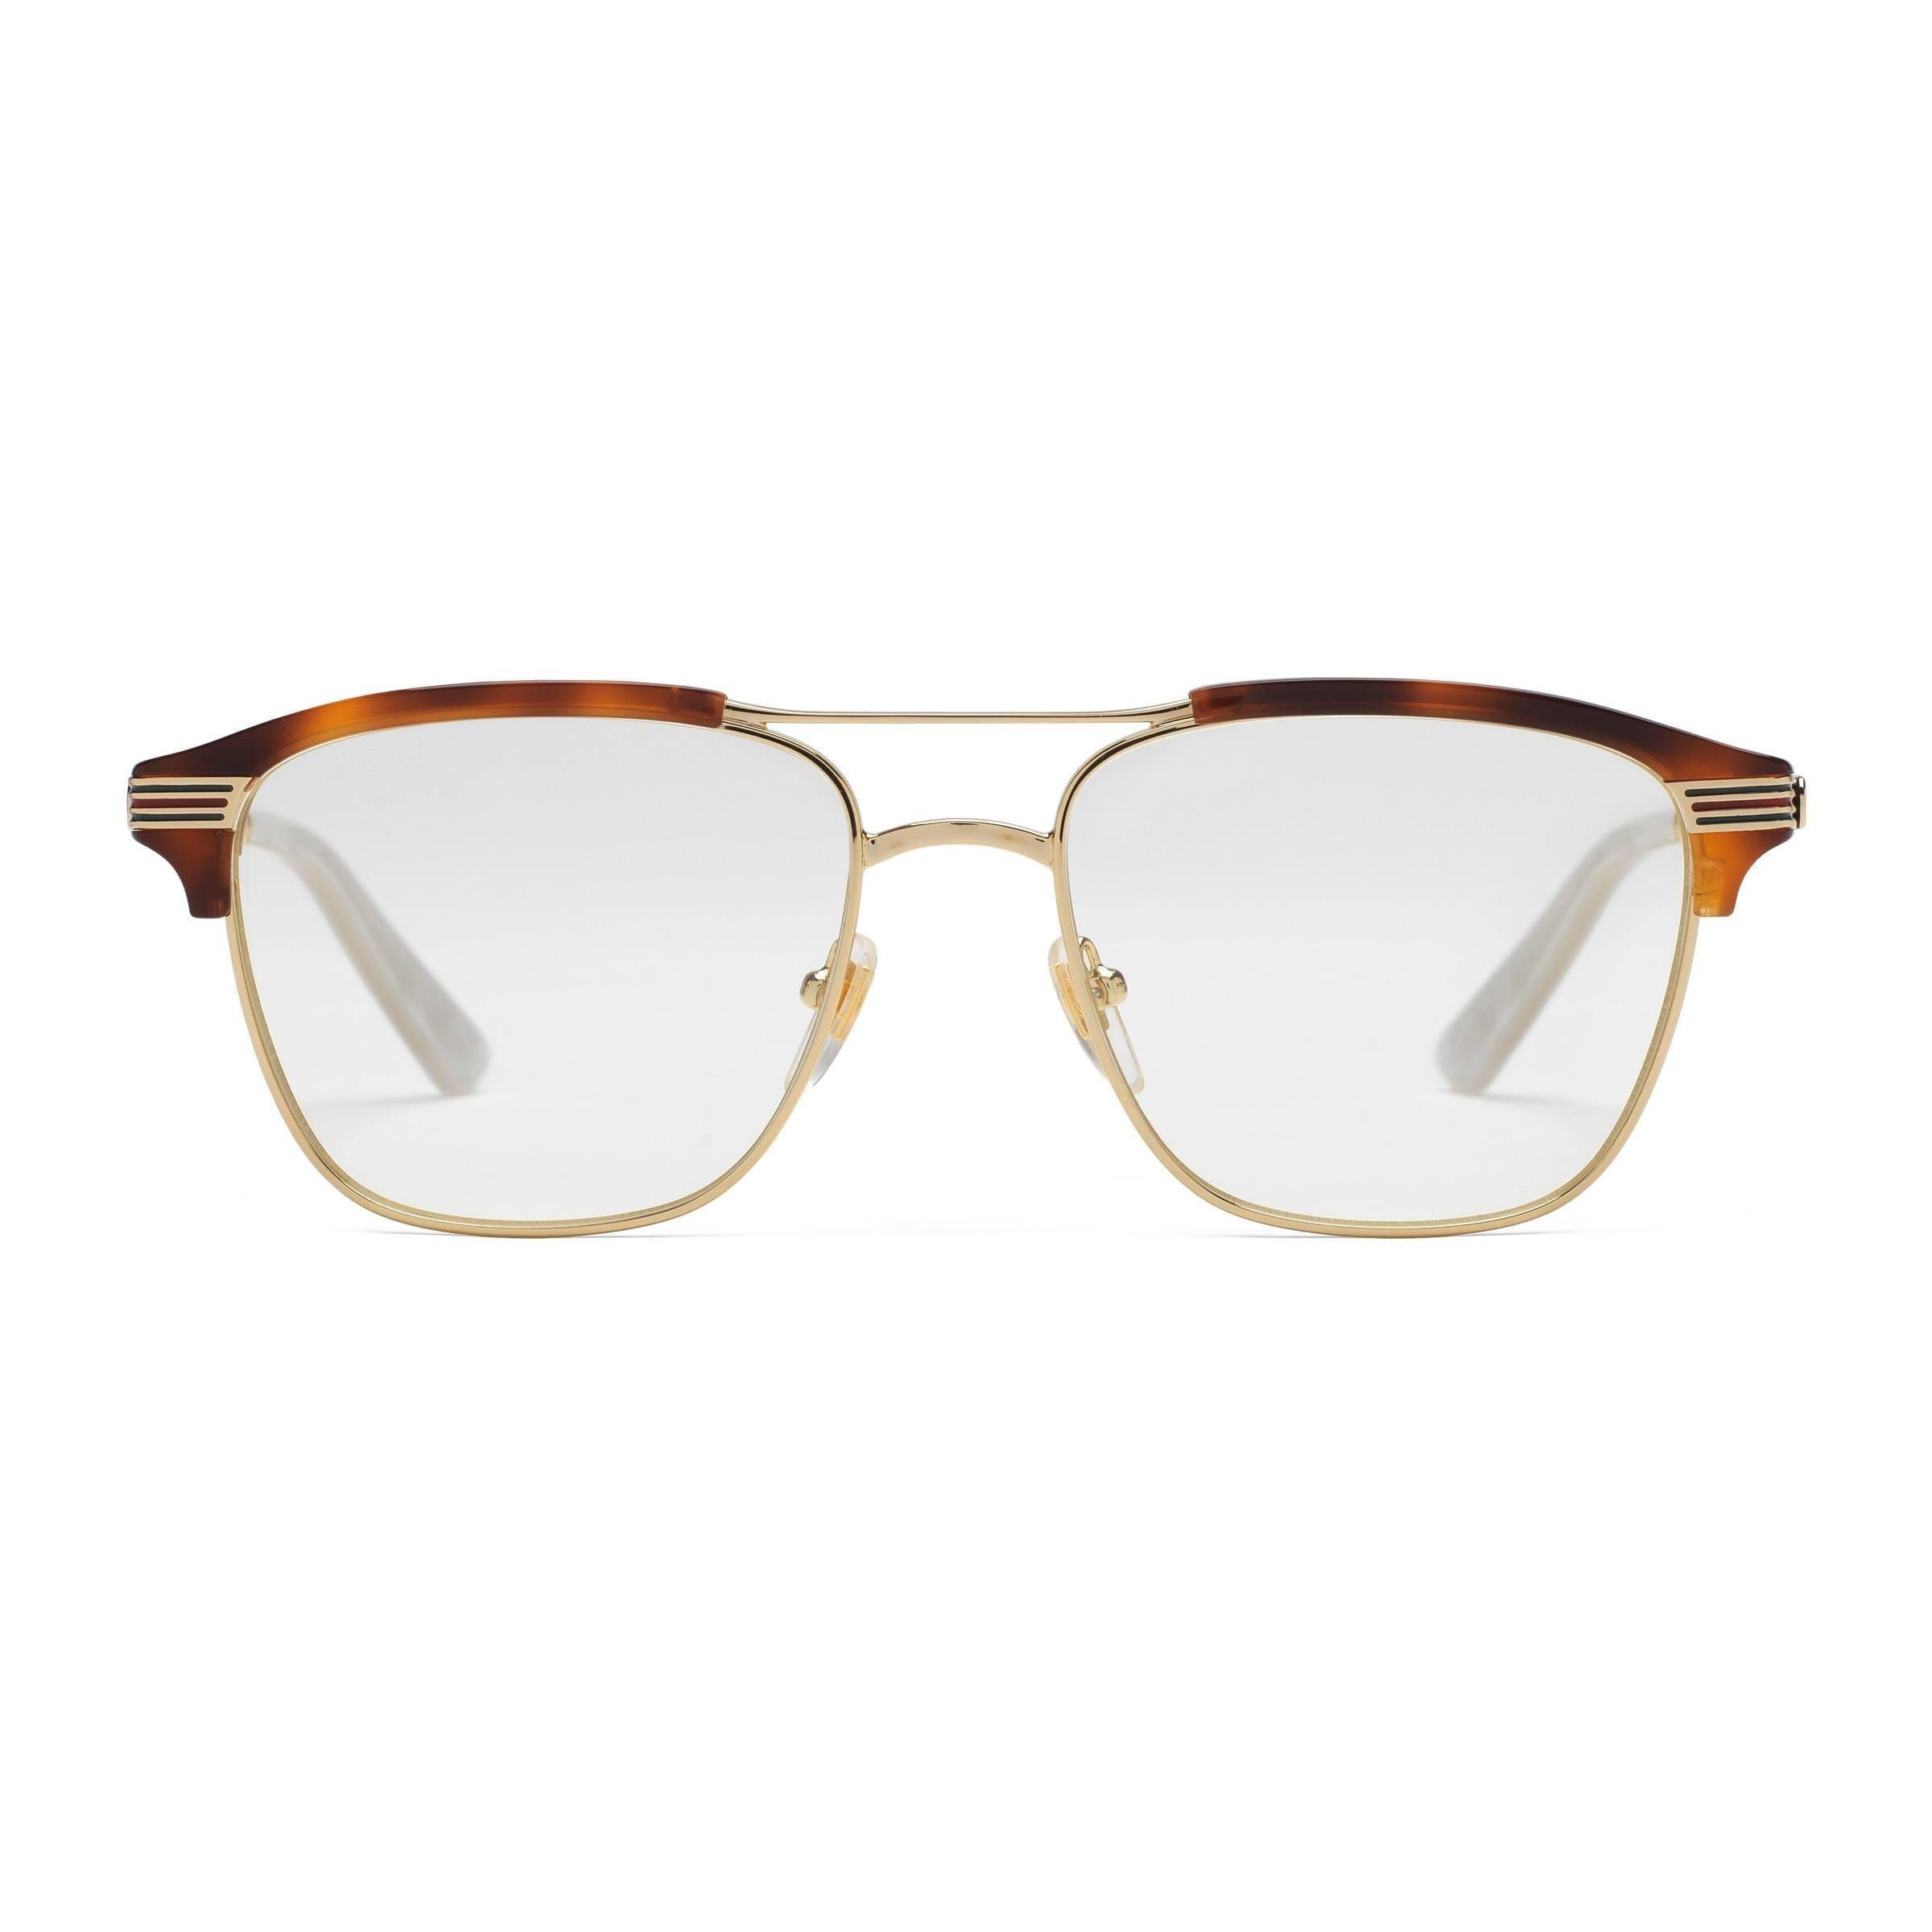 64ba16938ce Gucci Square-frame Metal Glasses in Brown for Men - Lyst